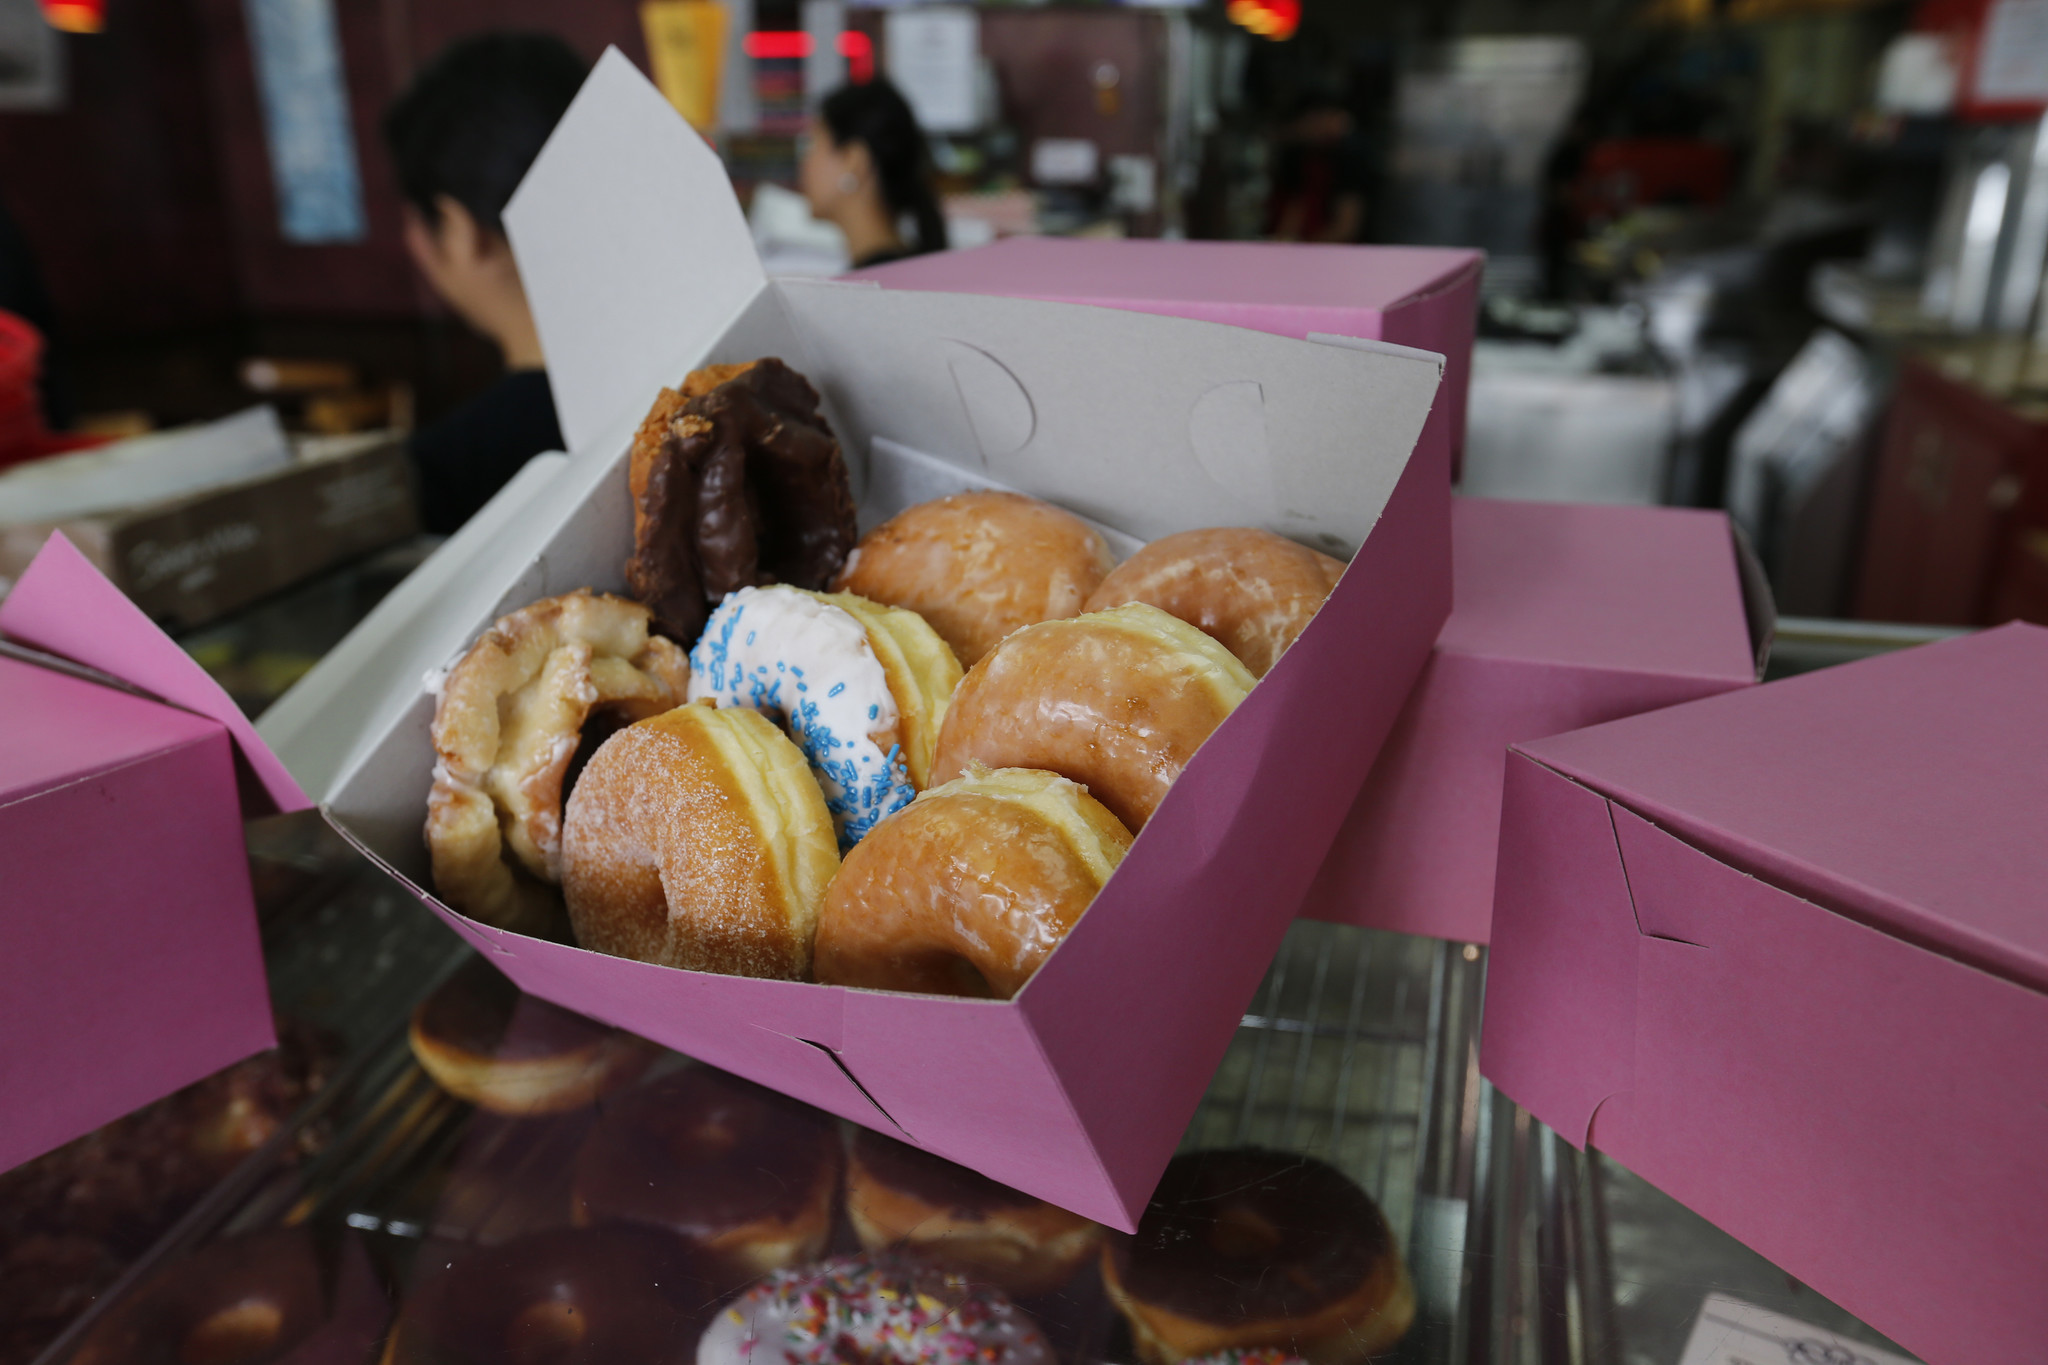 Susan Lim's doughnuts served in pink boxes at her Rose Donuts & Cafe in San Clemente.